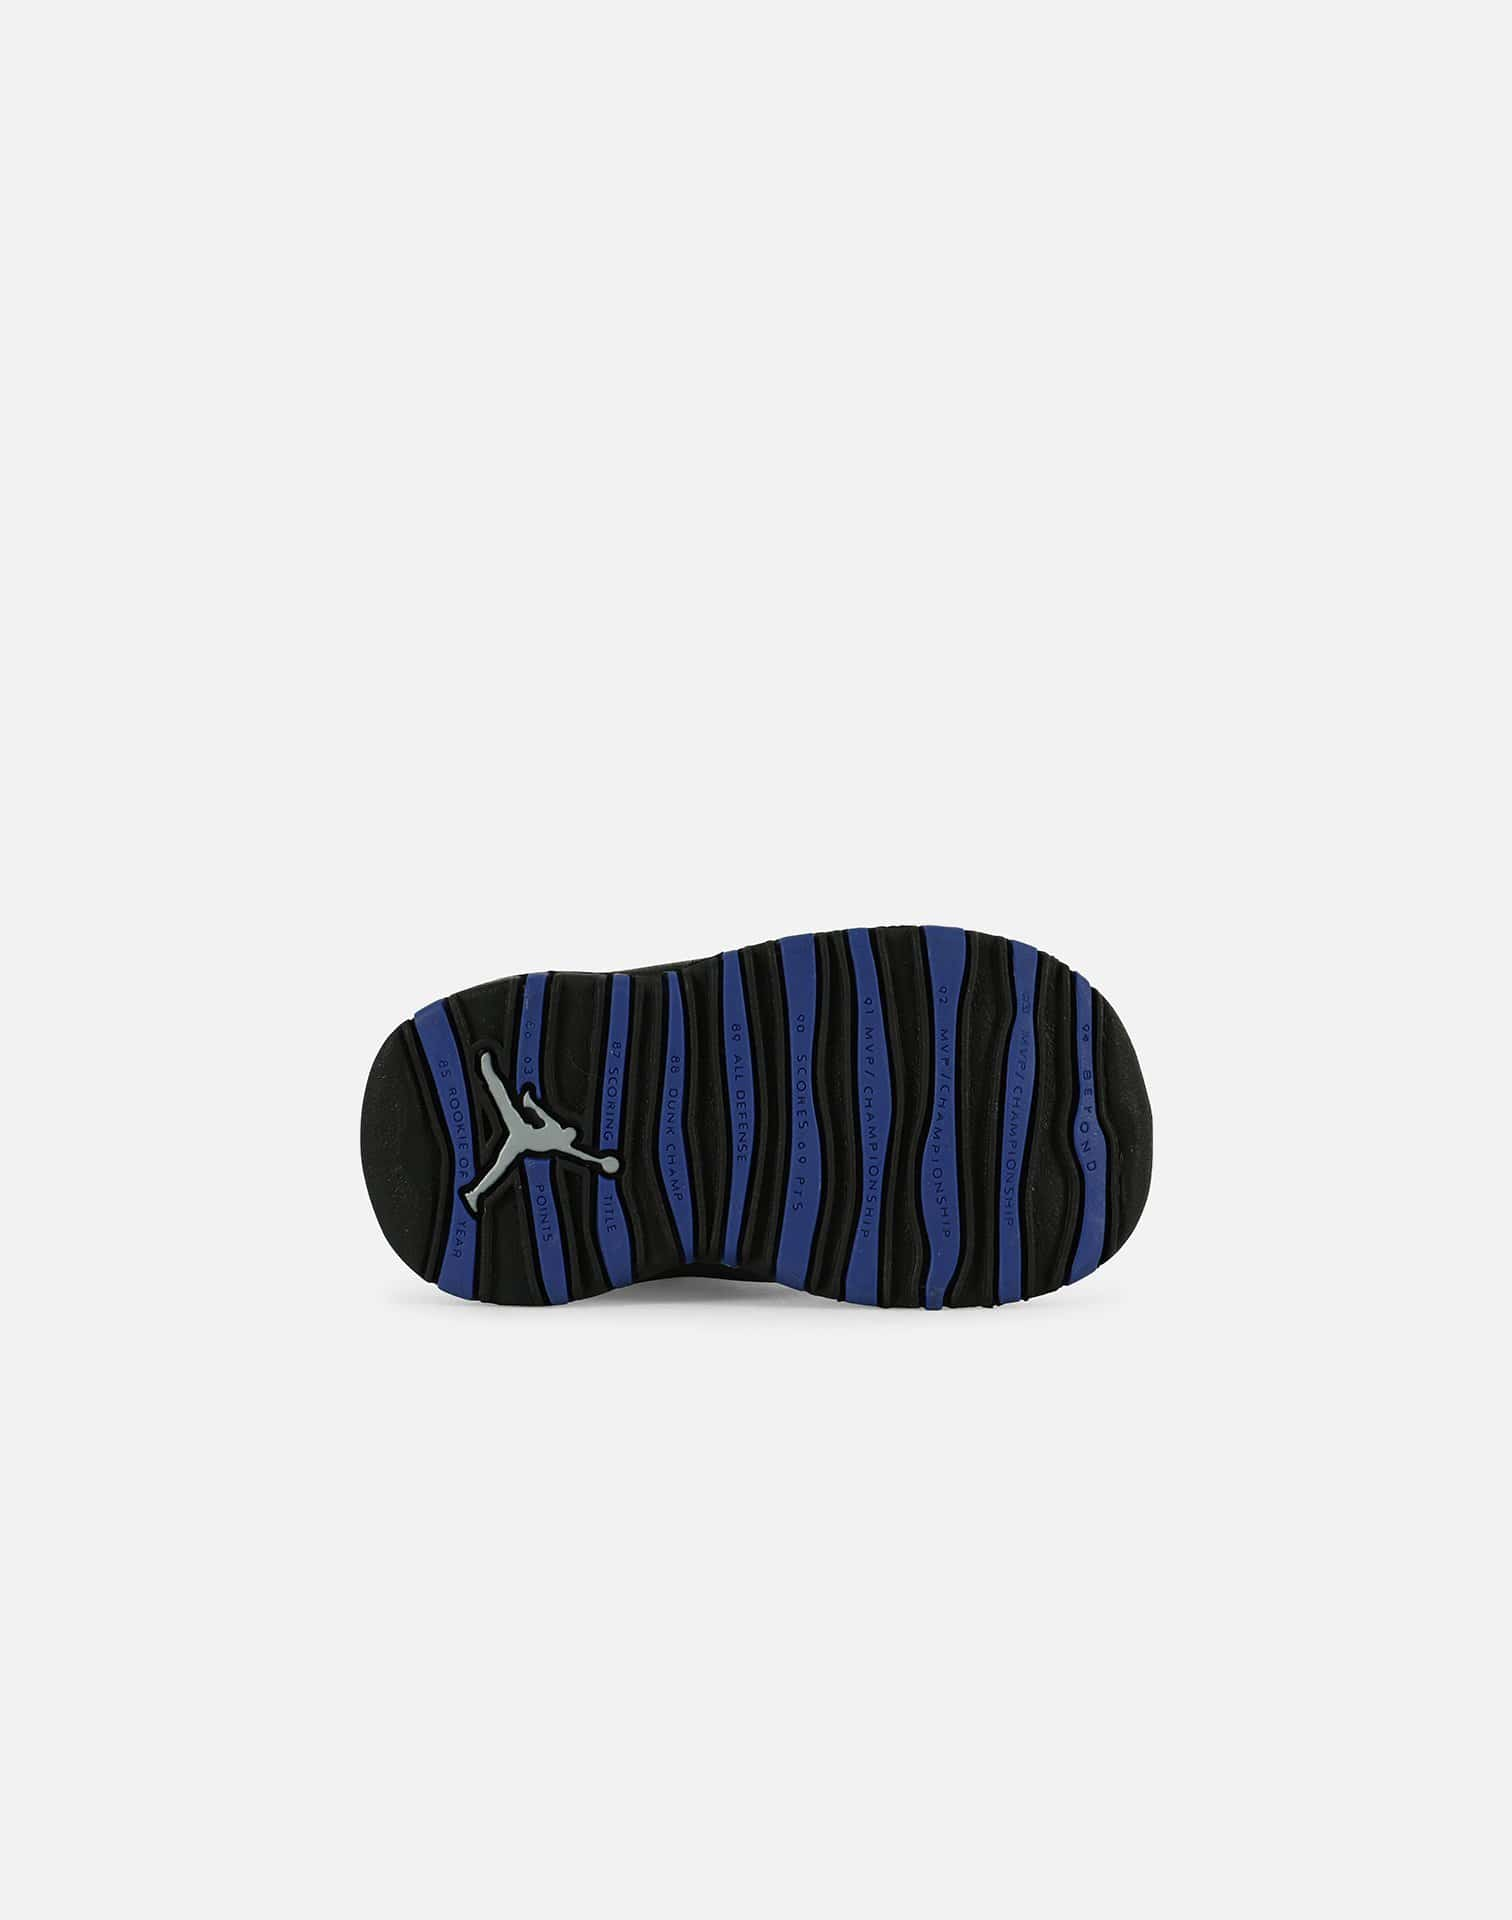 Jordan Air Jordan Retro 10 'Orlando' Infant